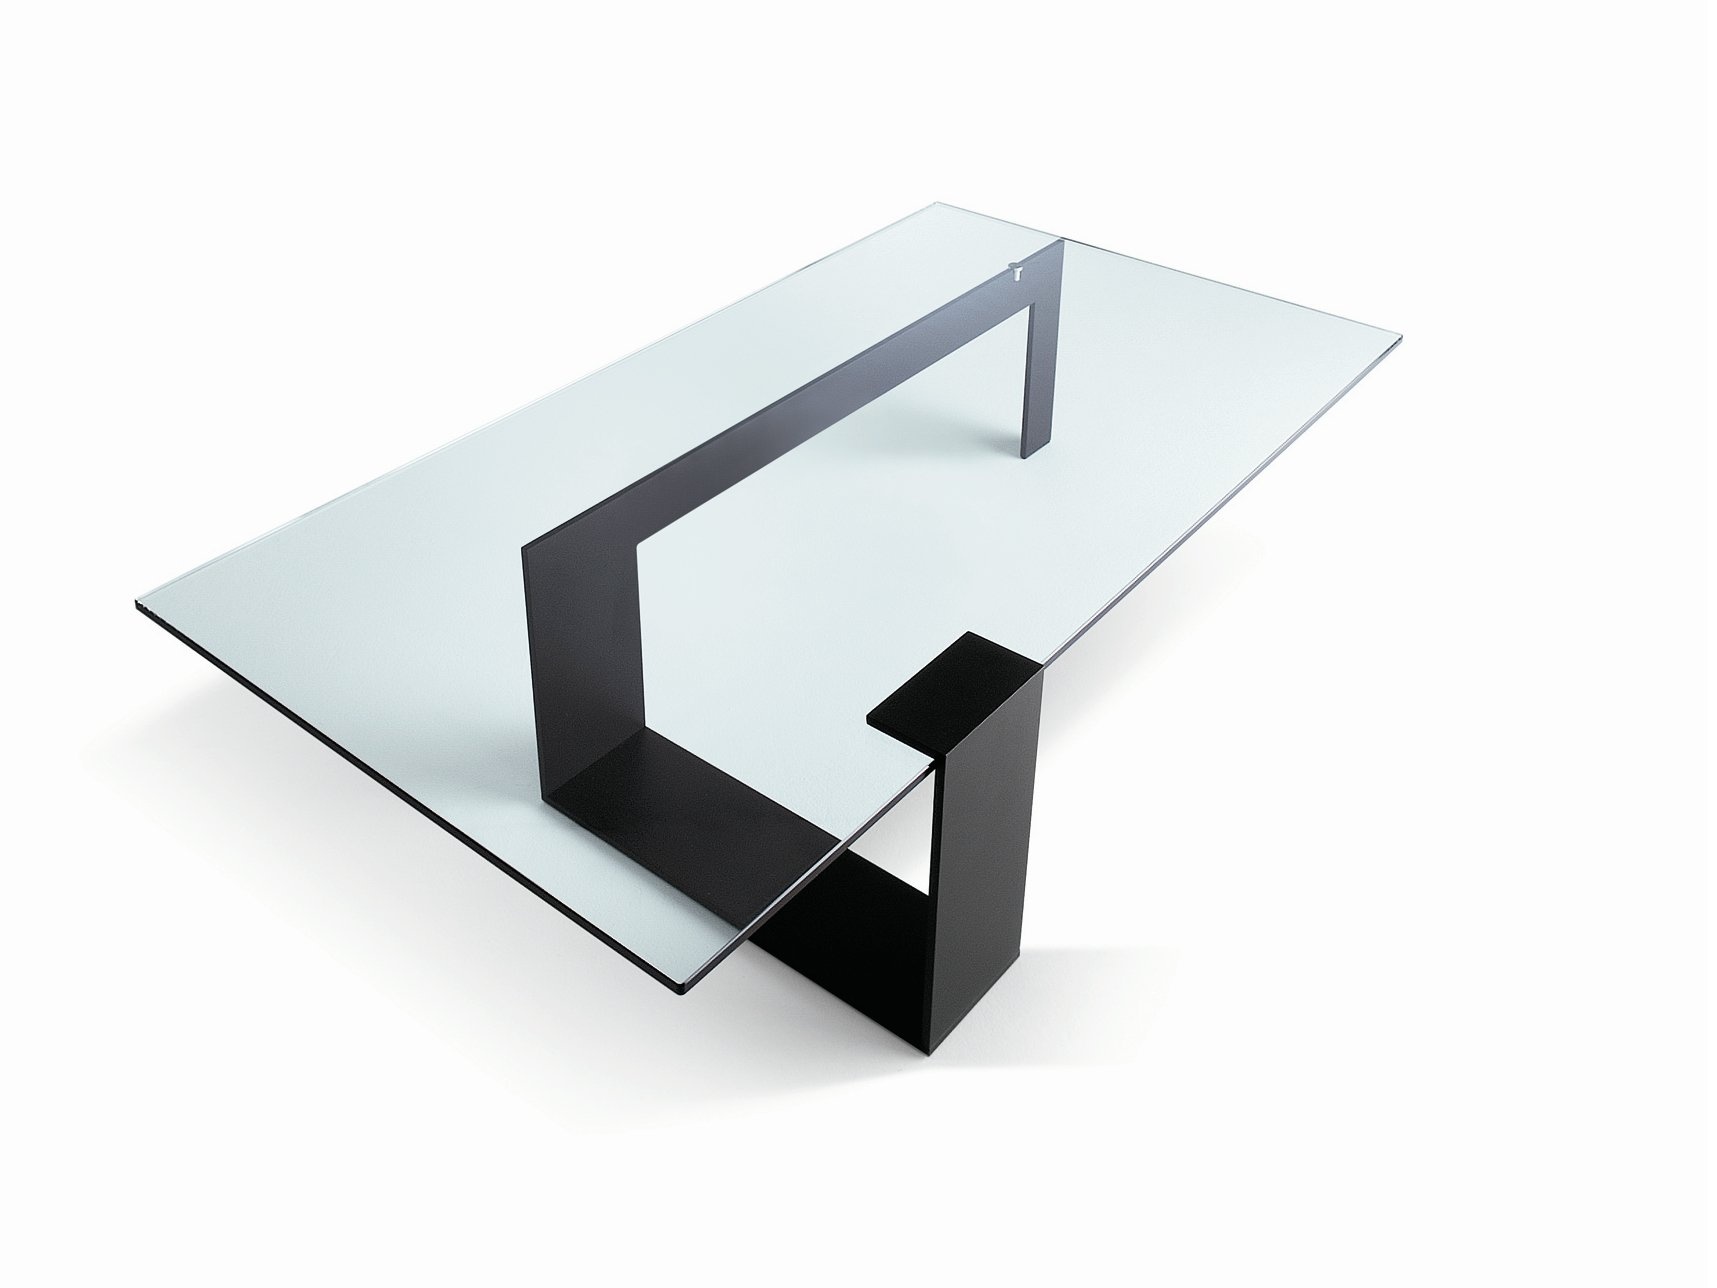 Table basse en verre plinsky by t d tonelli design design - Table basse en verre modulable ...